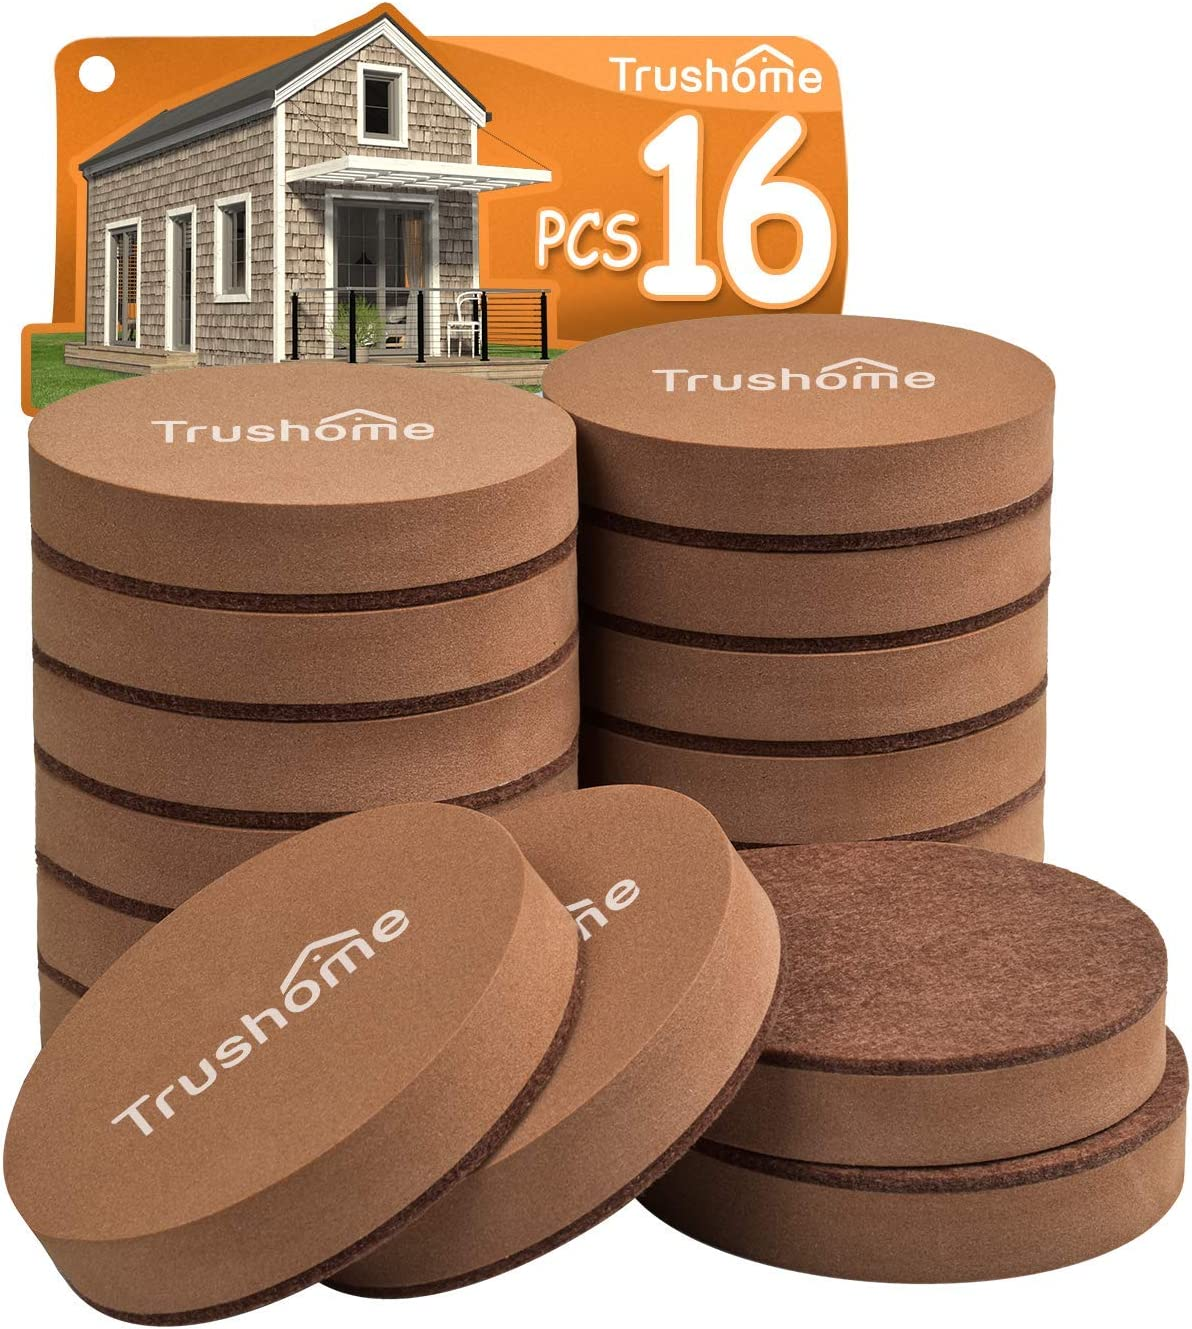 Furniture Sliders for Hardwood Floors, 16 Pack 3 1/2 inch Reusable Moving Pads Heavy Duty Felt Sliders for Hard Surfaces, Heavy Moving Pads Move Heavy Furniture Quickly and Easily